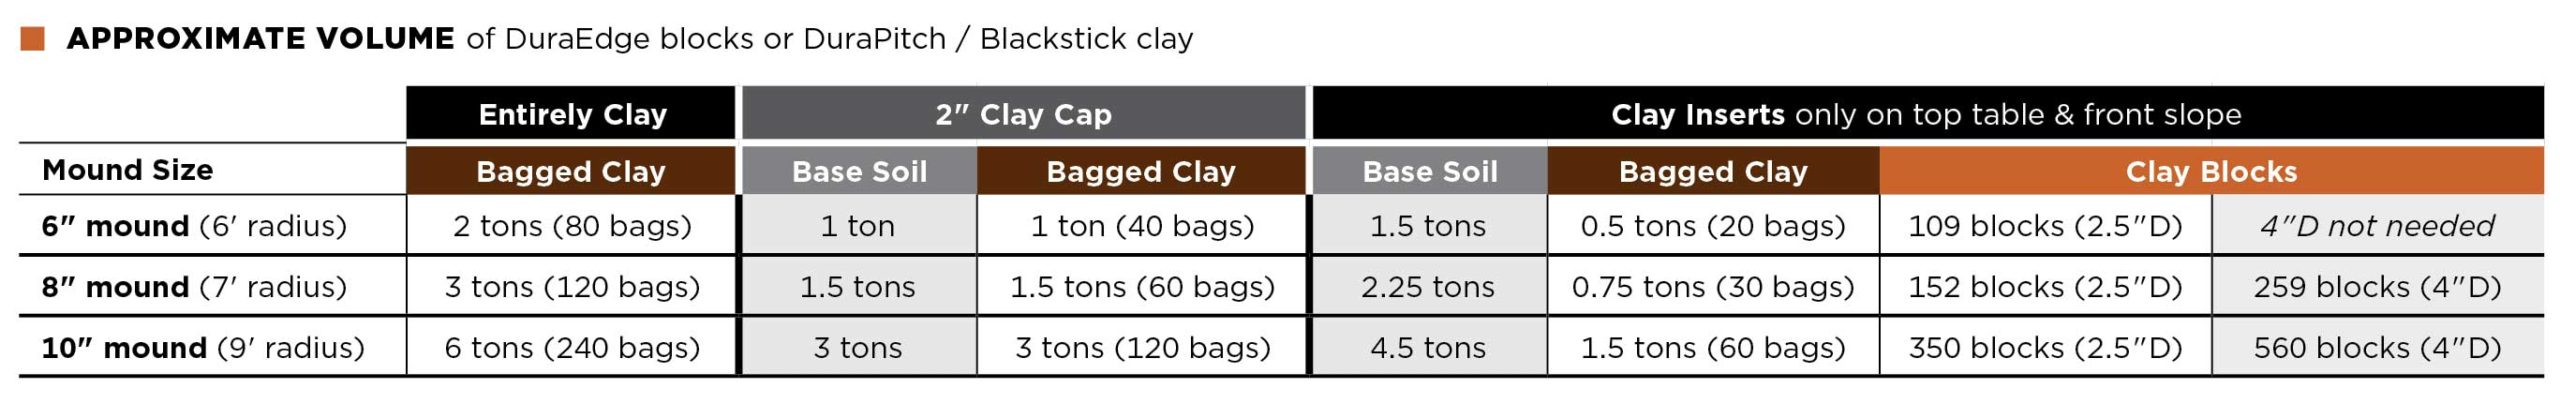 Table: APPROXIMATE VOLUMES of DuraEdge blocks or DuraPitch / Blackstick clay